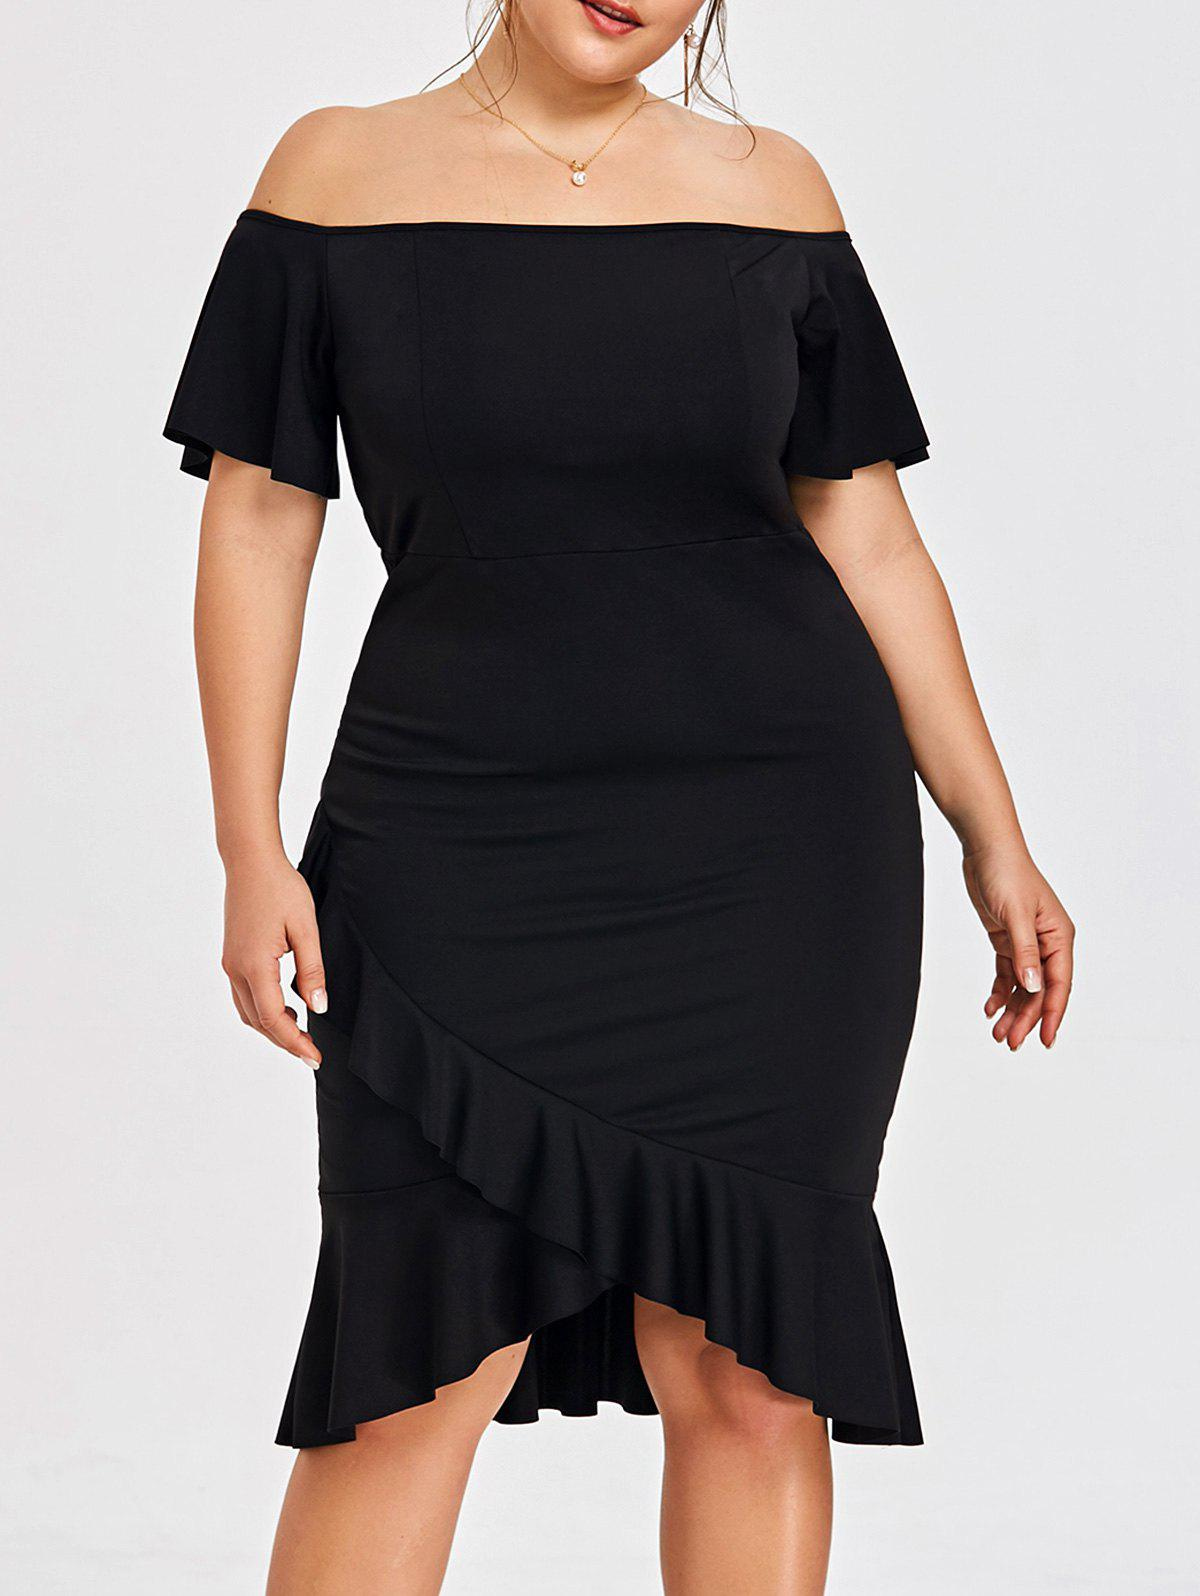 Black Xl Plus Size Off The Shoulder Mermaid Dress